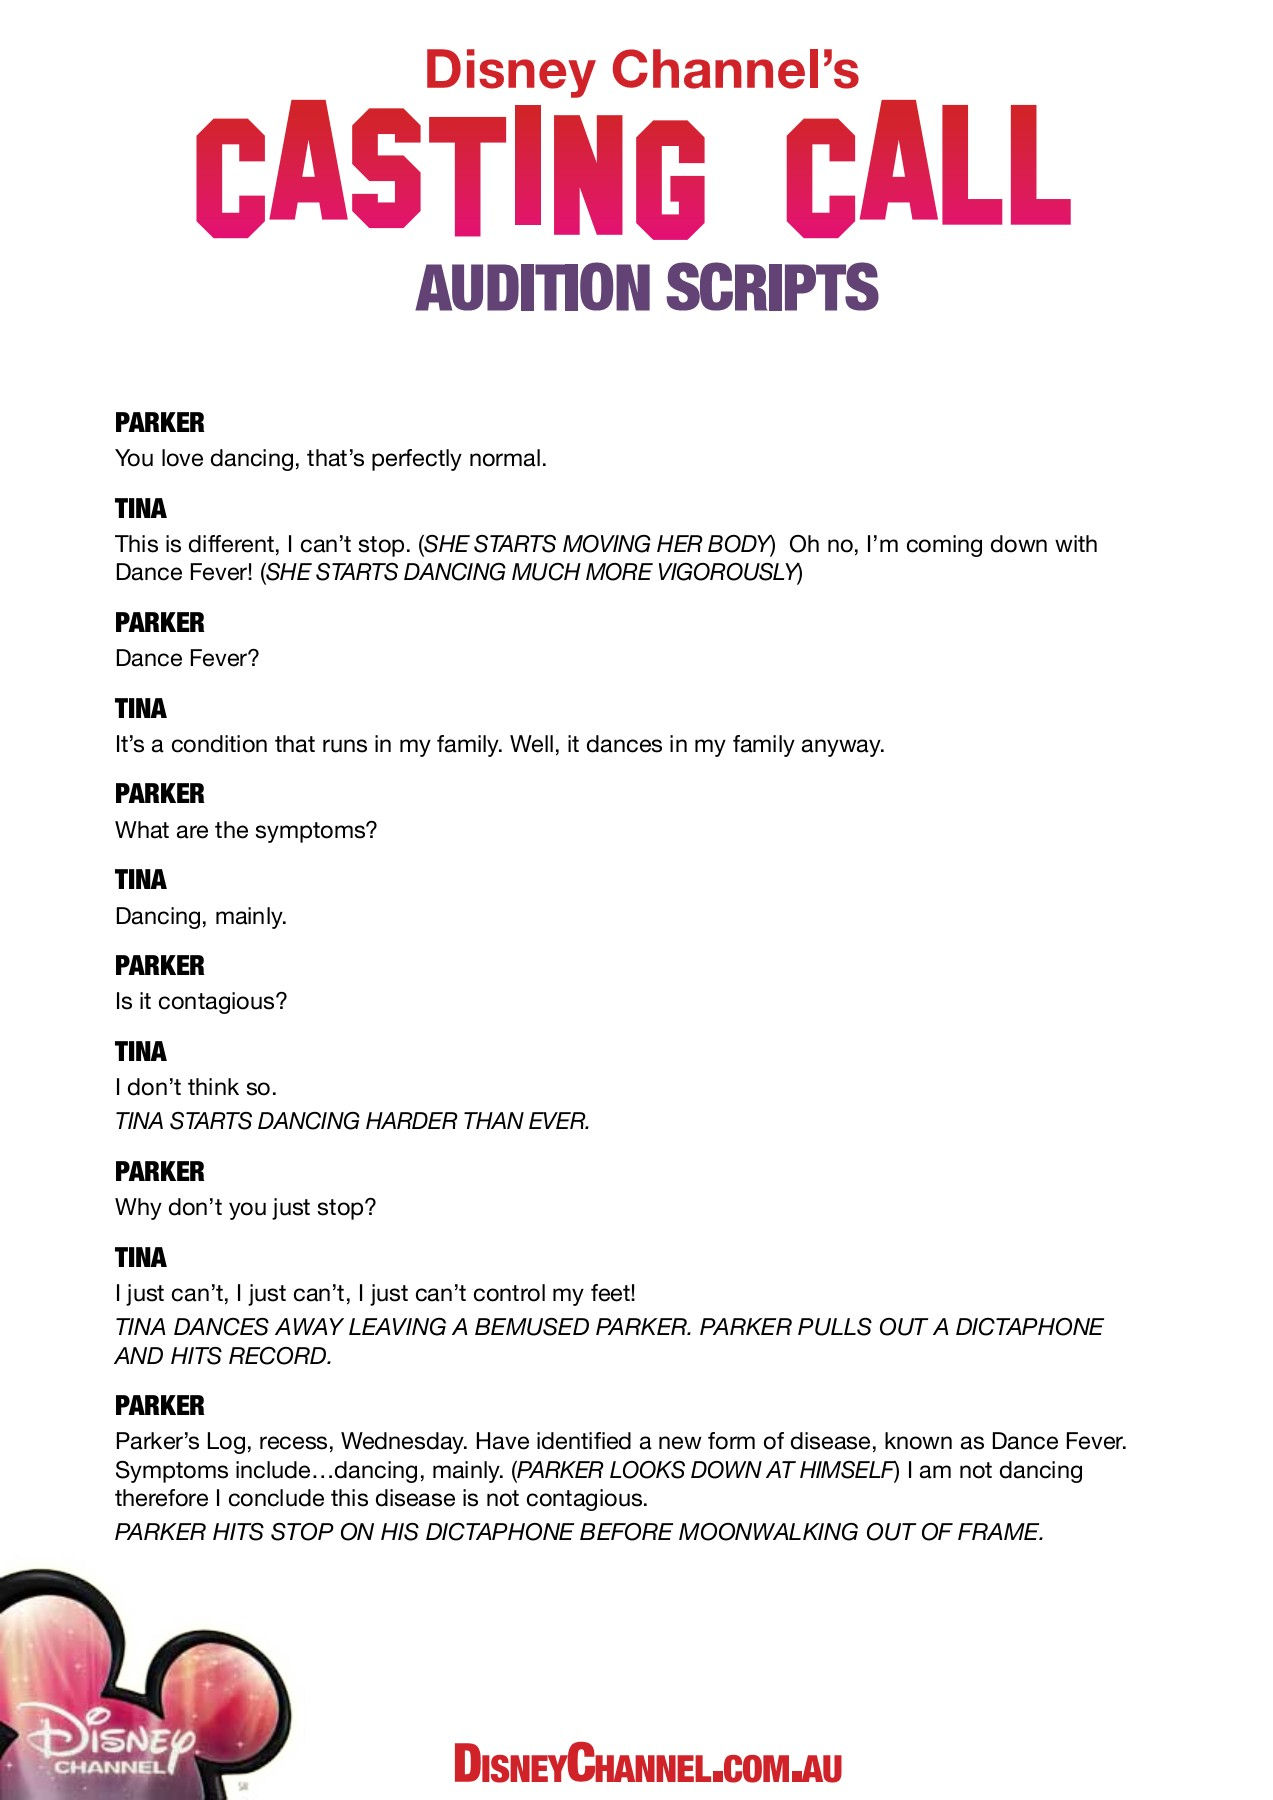 AUDITION SCRIPTS - Disney